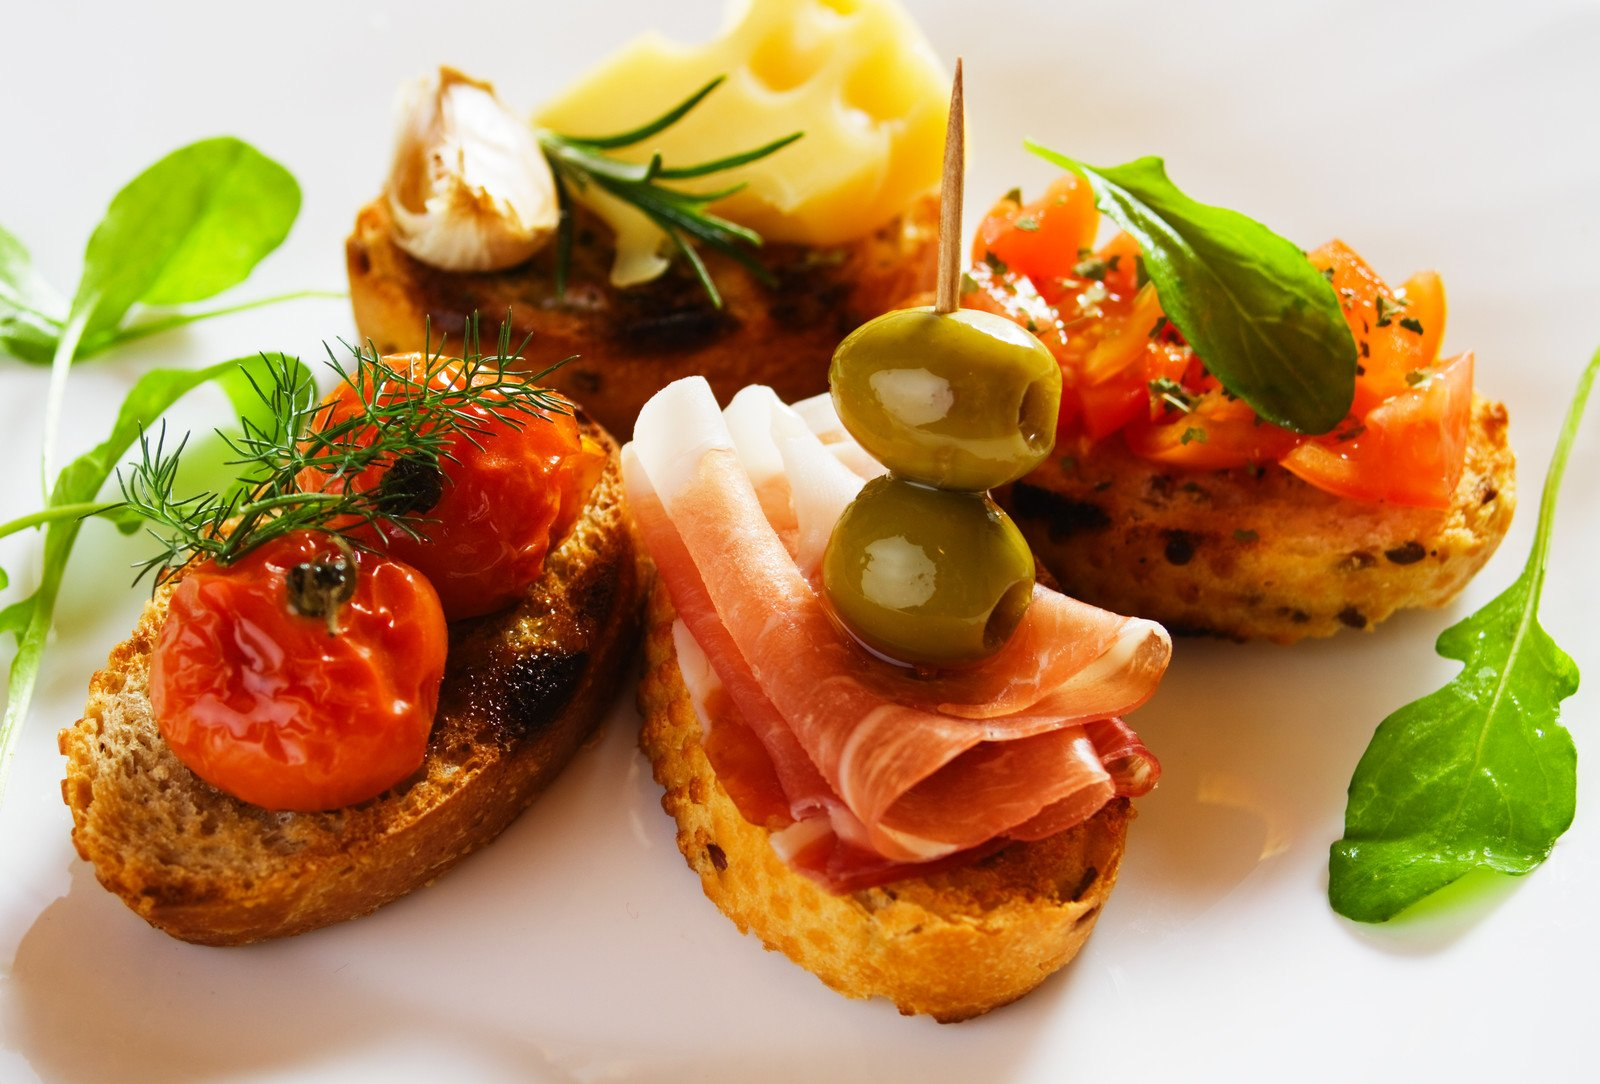 oven-toasted bruschette bread topped with slices of red smoked salmon olives and herbs